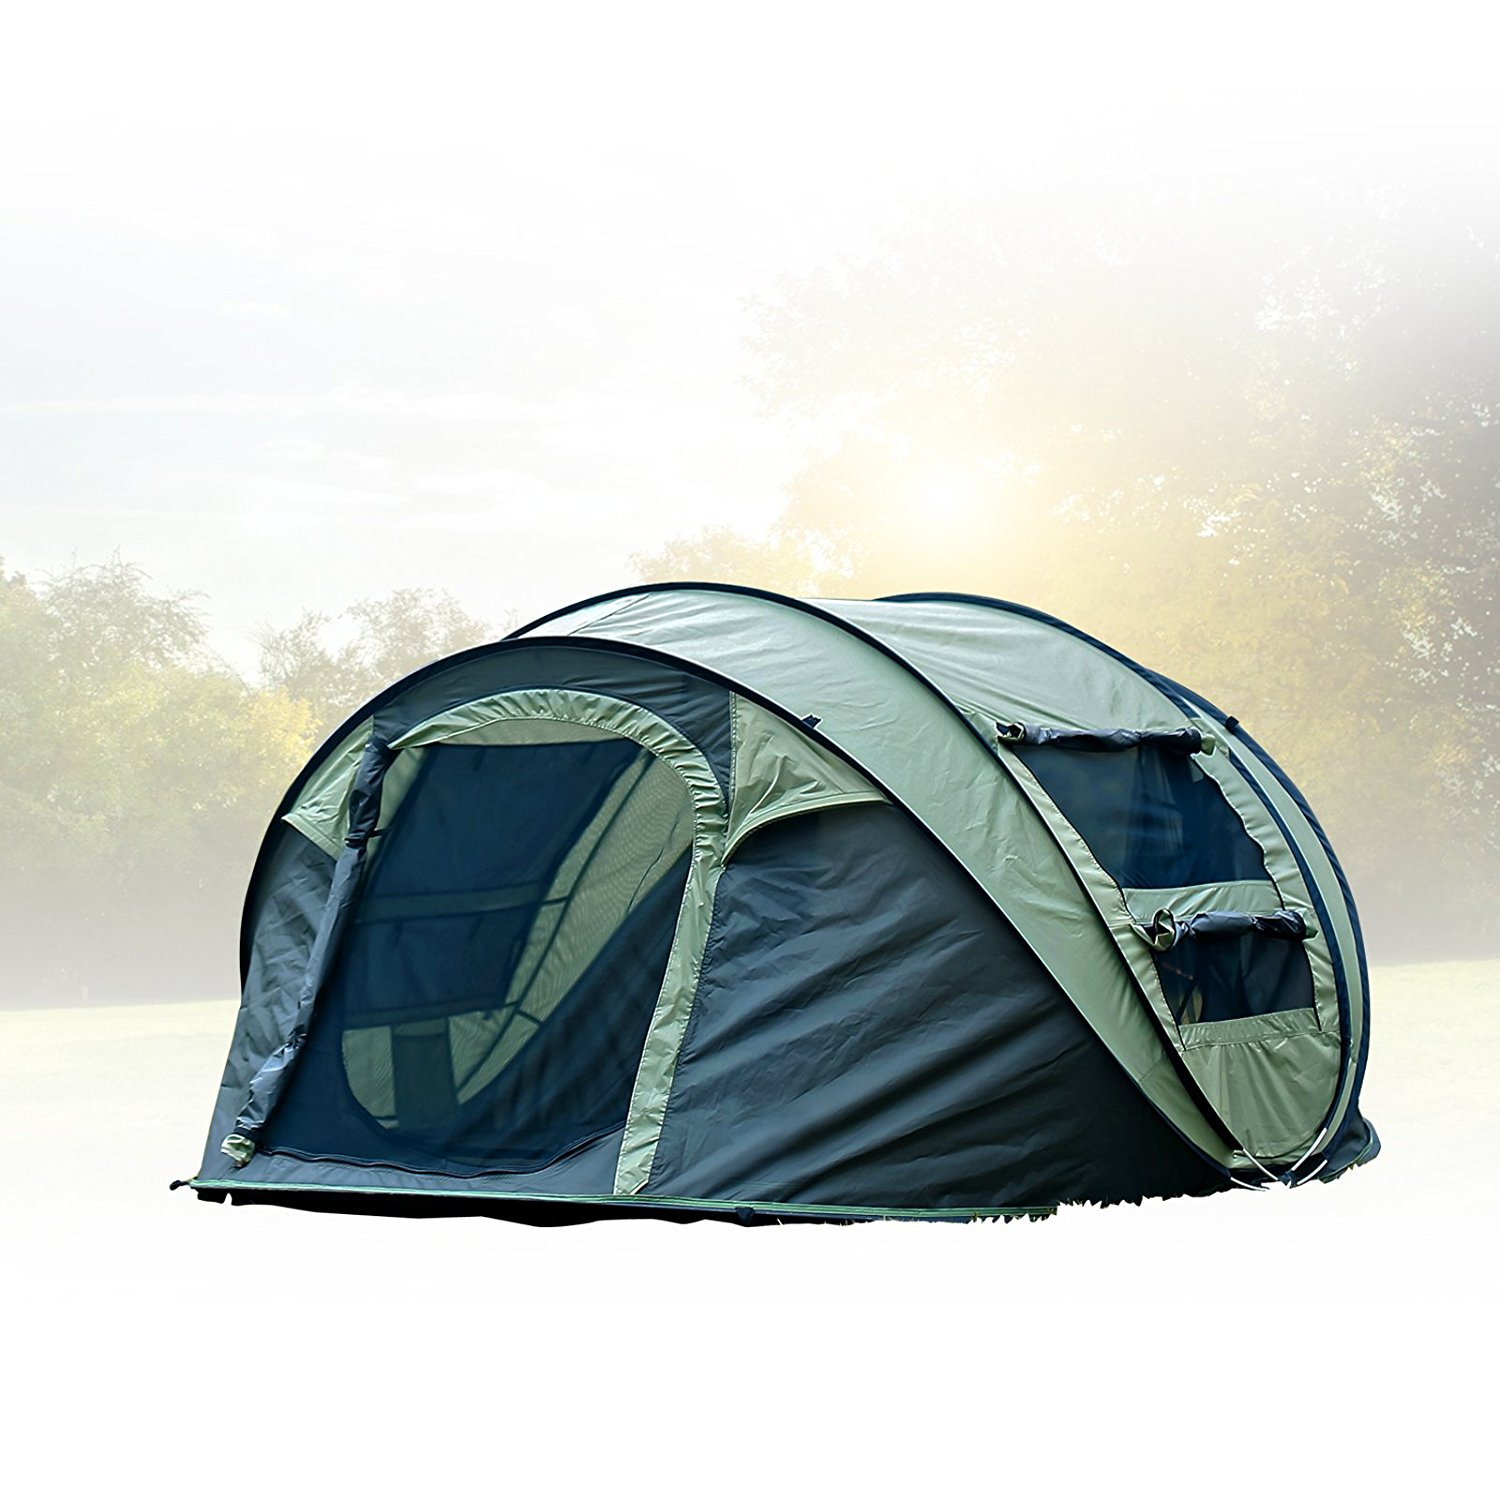 Fivejoy Instant 4 Person Tent  sc 1 st  Koiyaki Guiding School & Best Family Tent For Camping in 2018 - KOIYAKI.COM